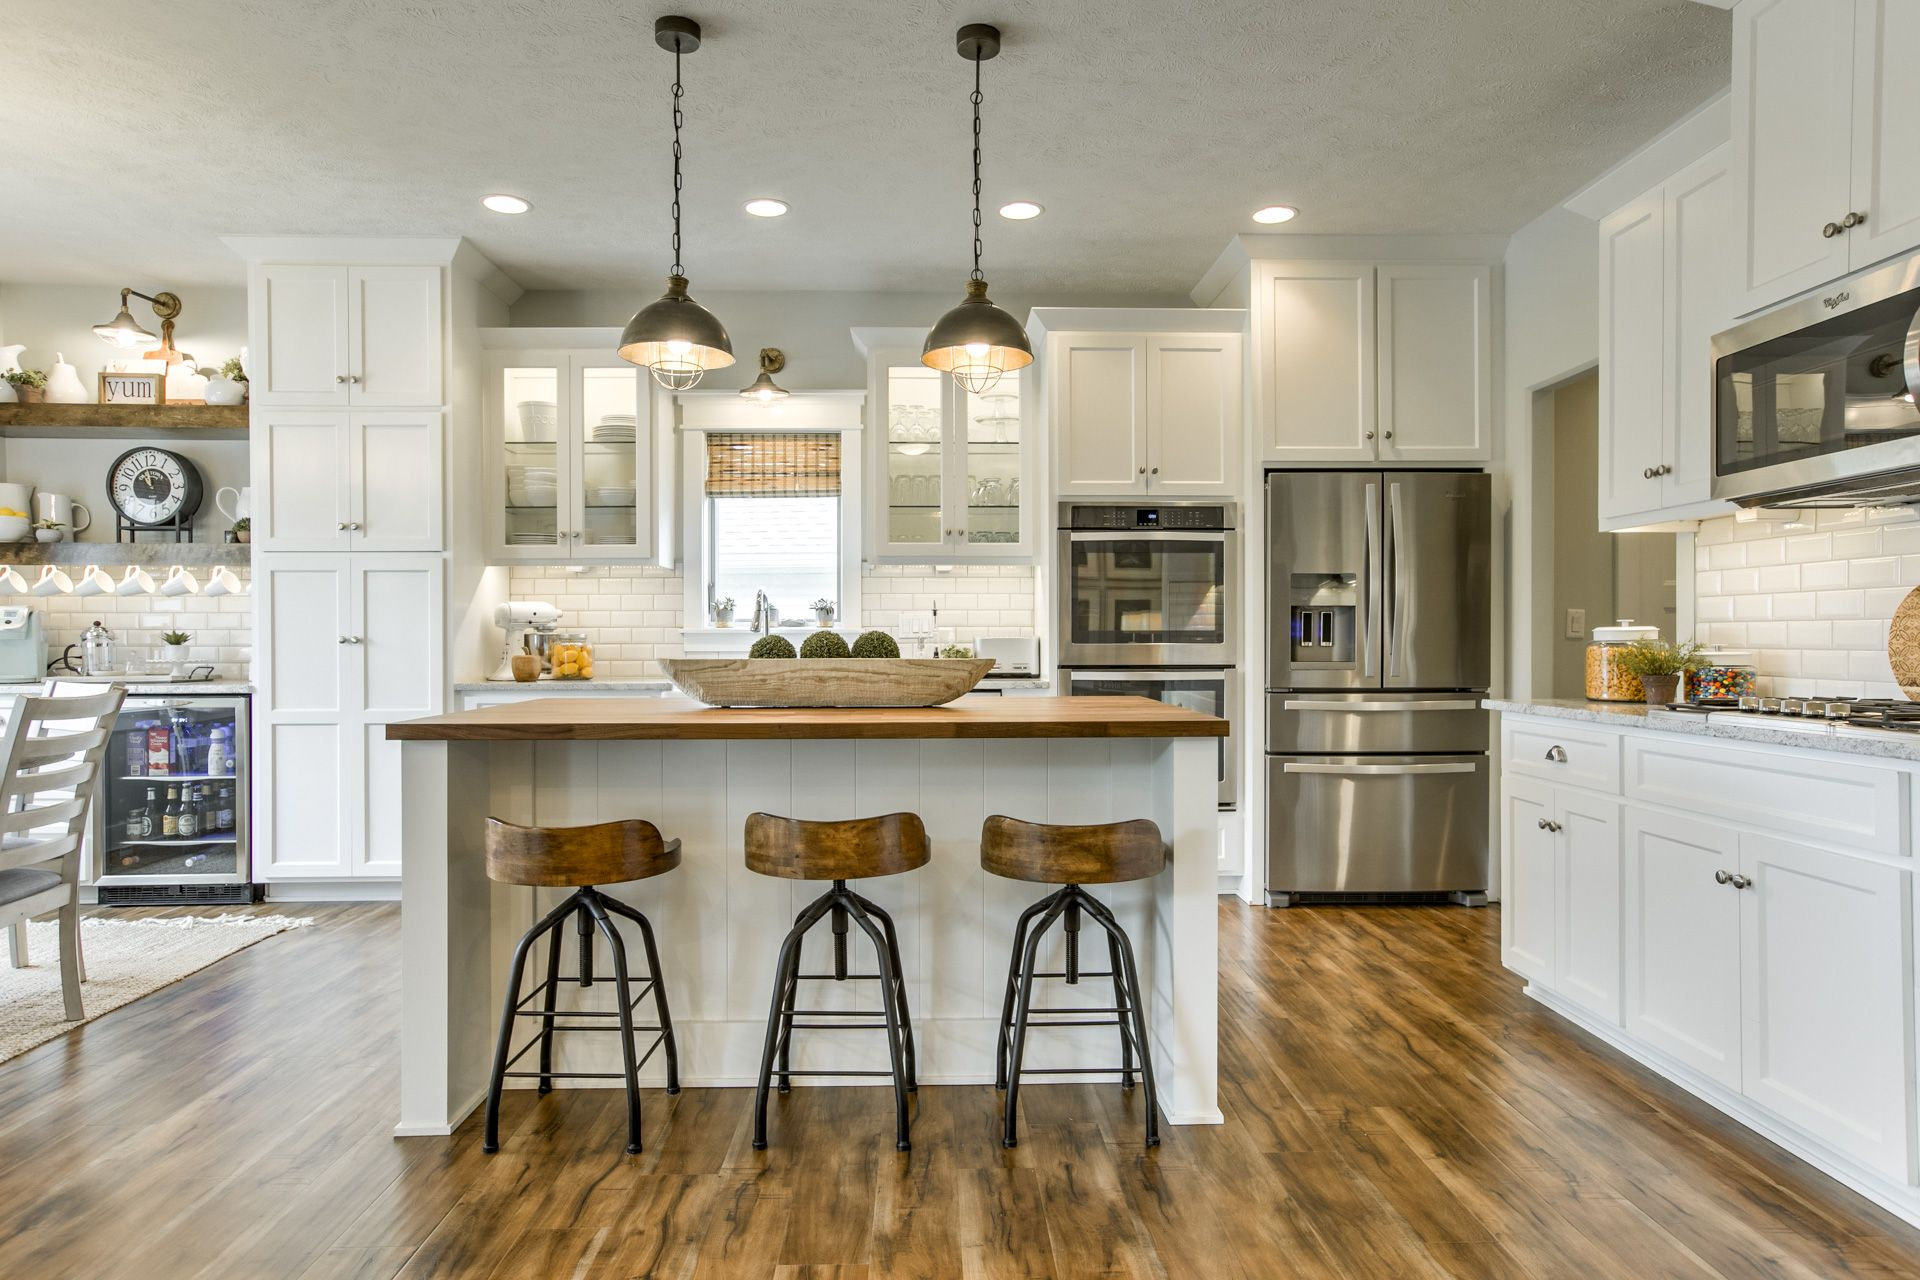 Modern farmhouse kitchen. Coffee bar with floating shelves